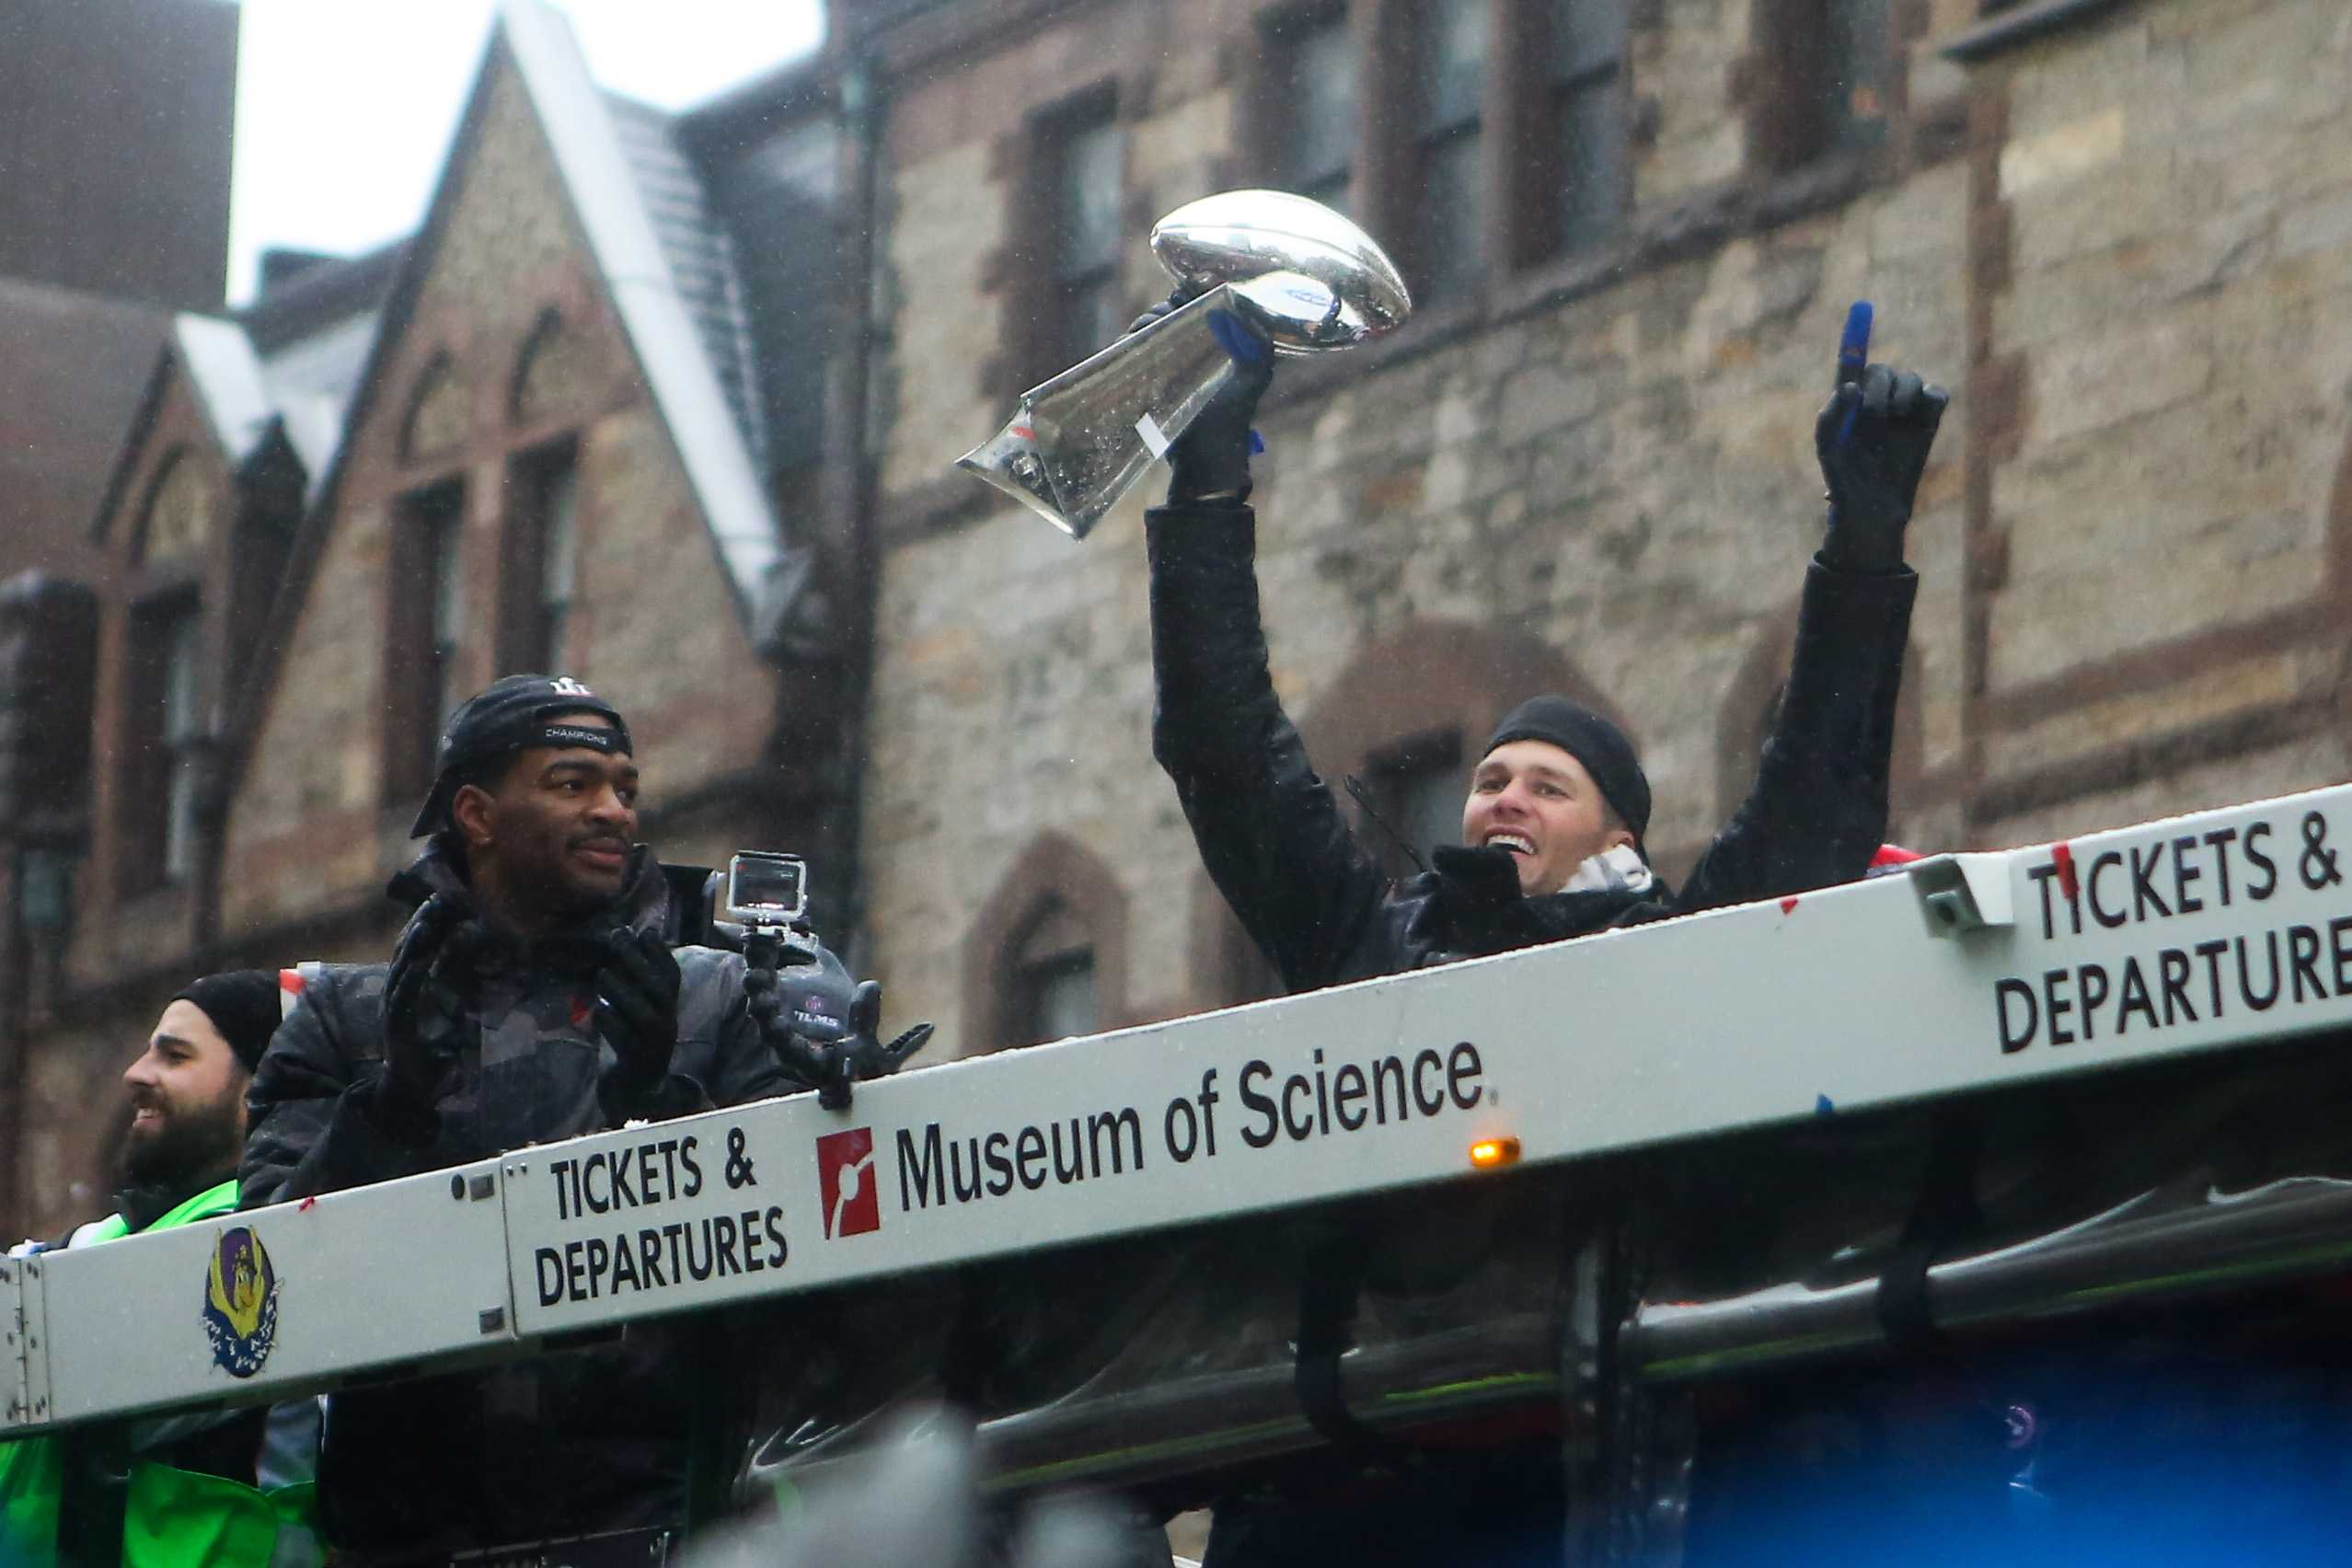 Tom Brady shows off the Vince Lombardi Trophy from Super Bowl LI during the Patriots' Victory Parade.